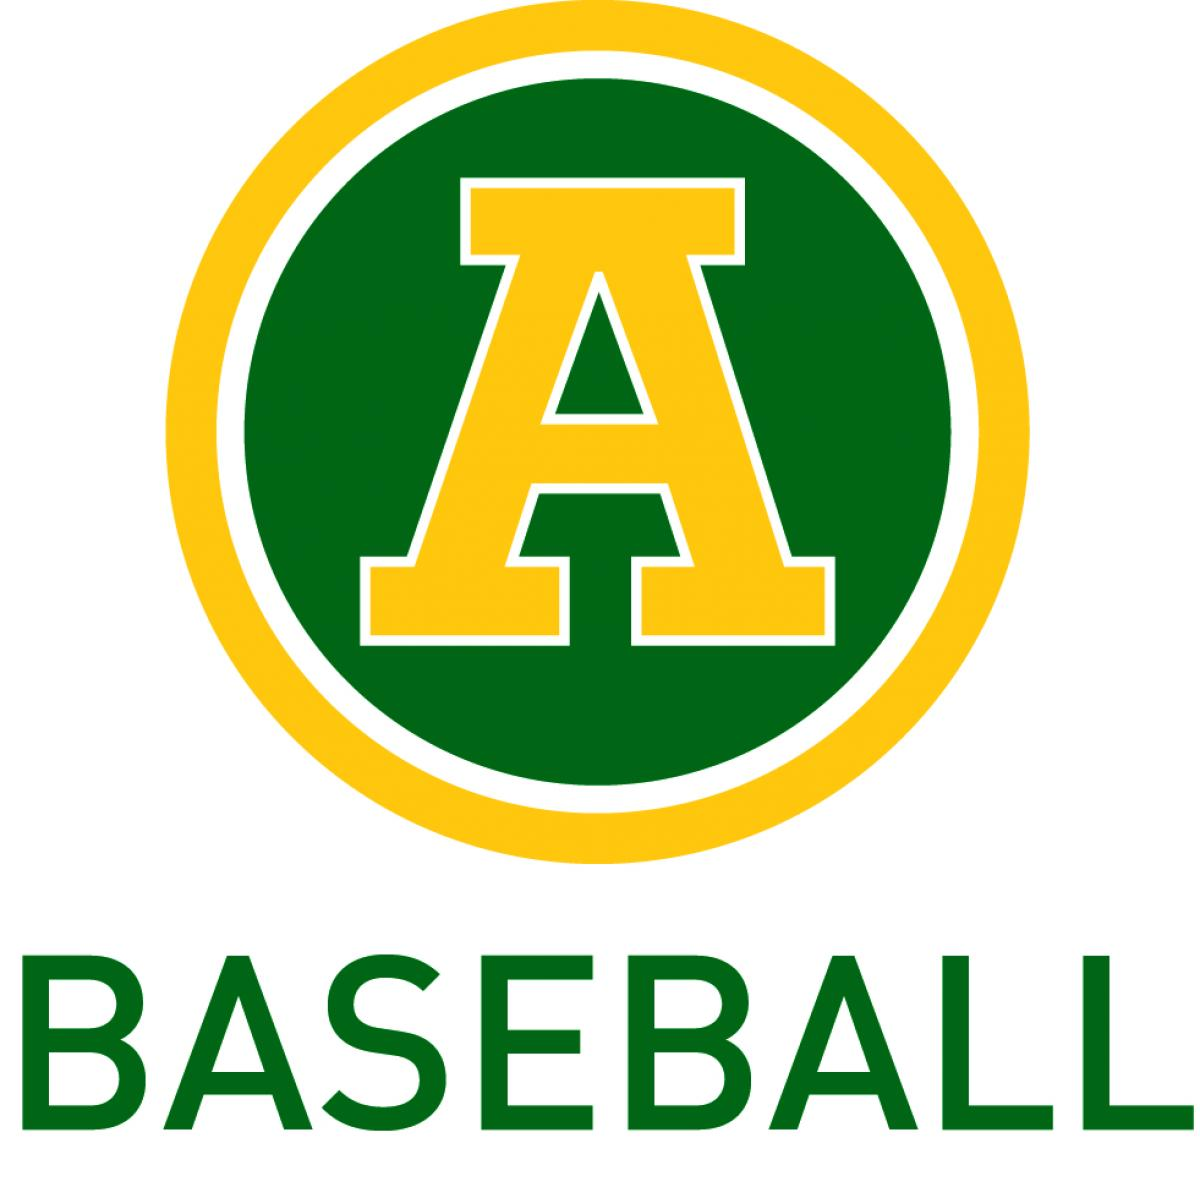 UNIVERSITY OF ALBERTA BASEBALL CLUB CHARITABLE DONATION LINK